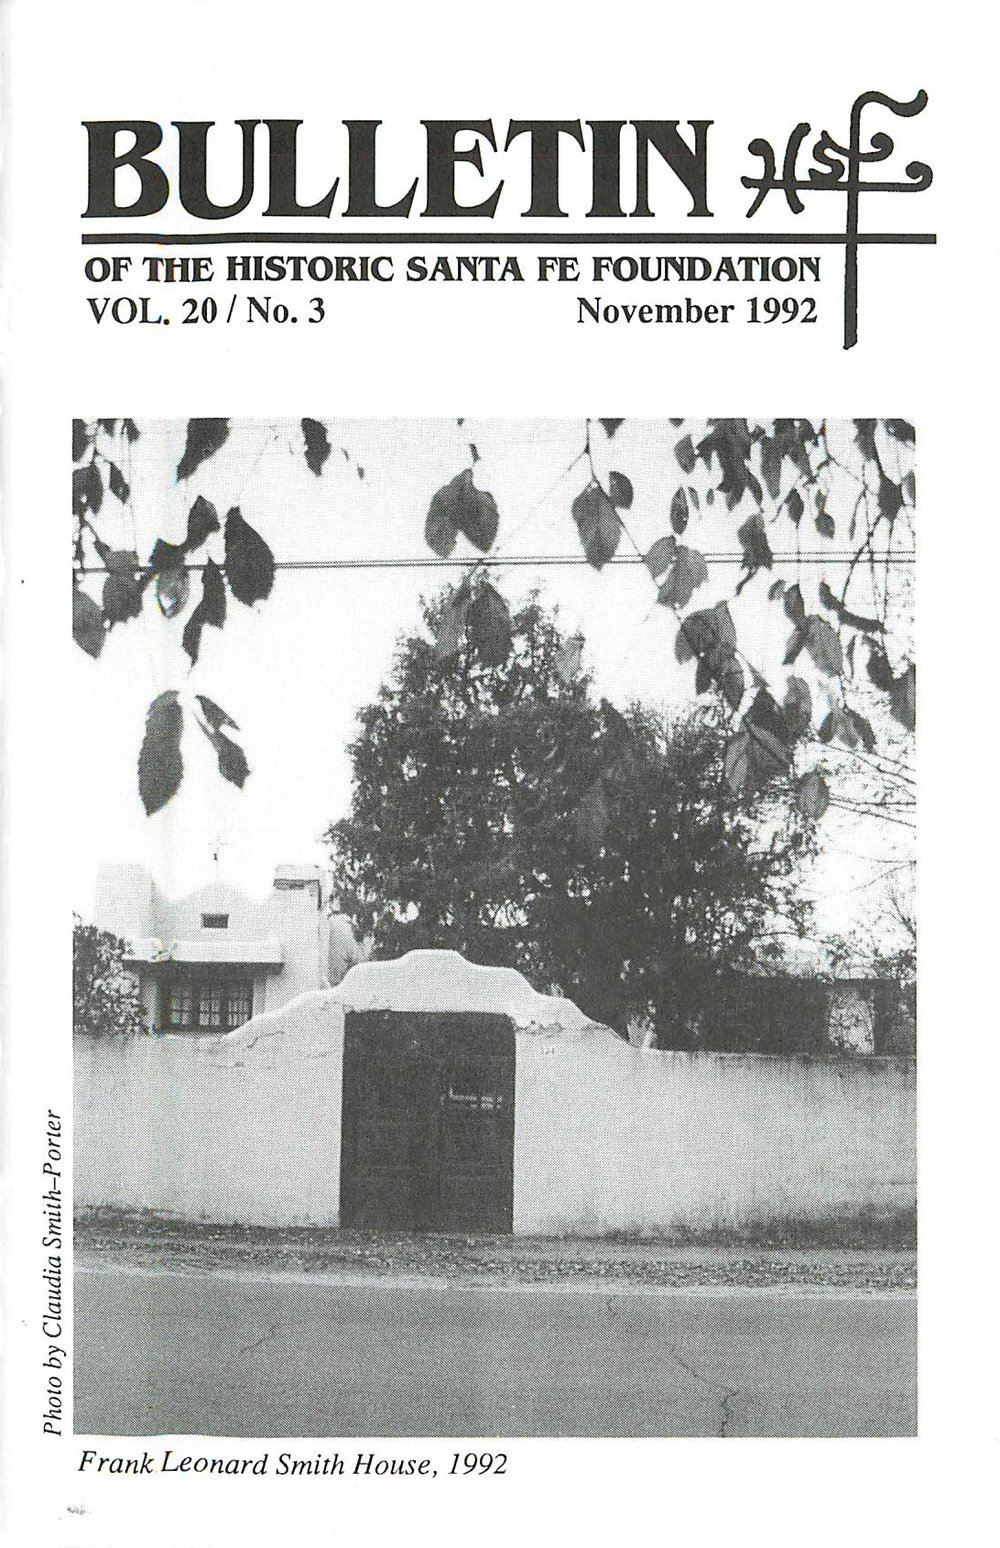 1992 HSFF Bulletin Vol.20 No.3 Cover